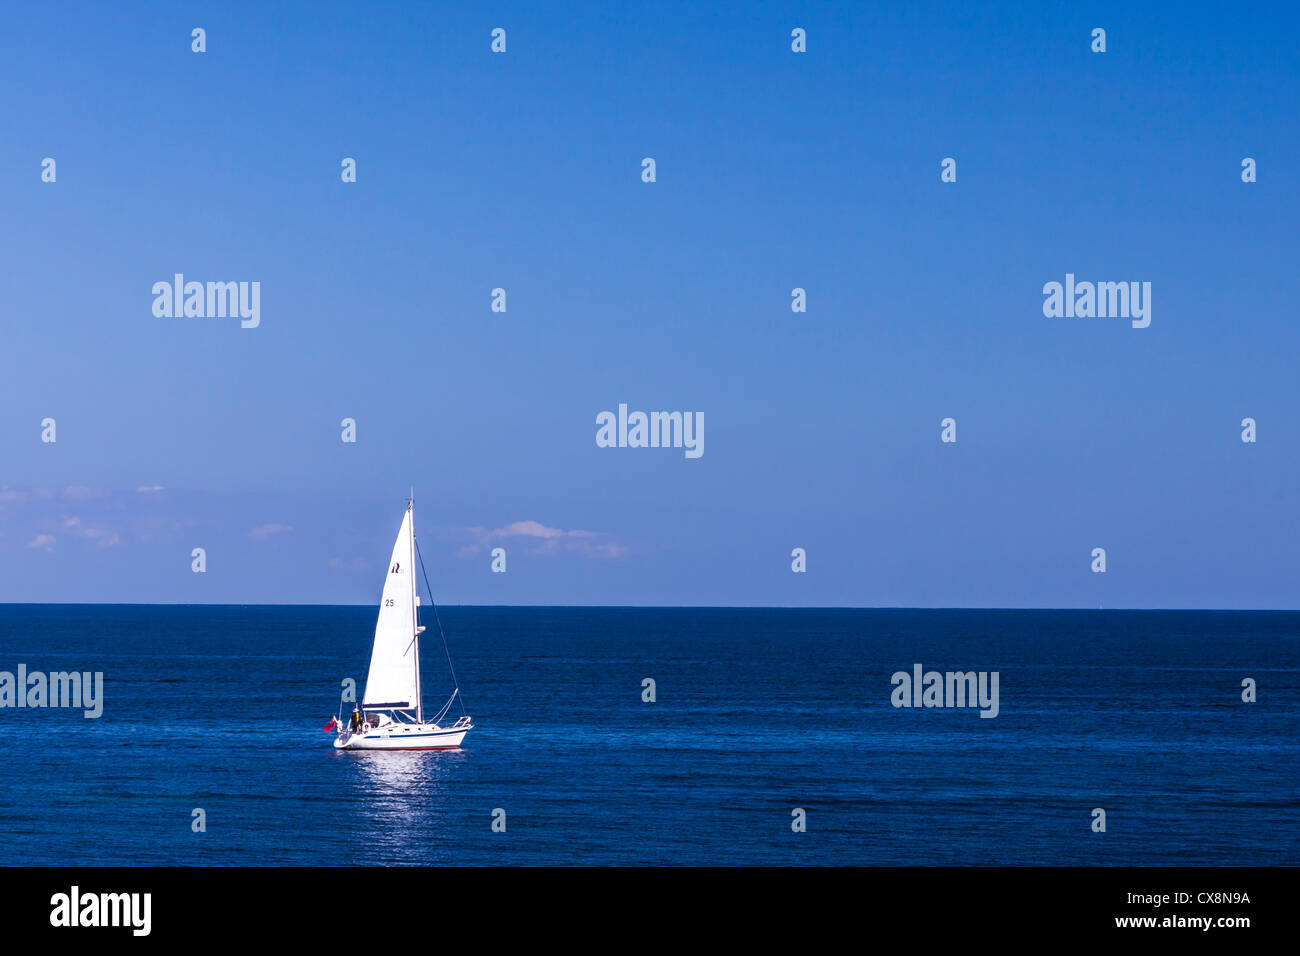 Small sailing yacht in the big blue sea. Stock Photo